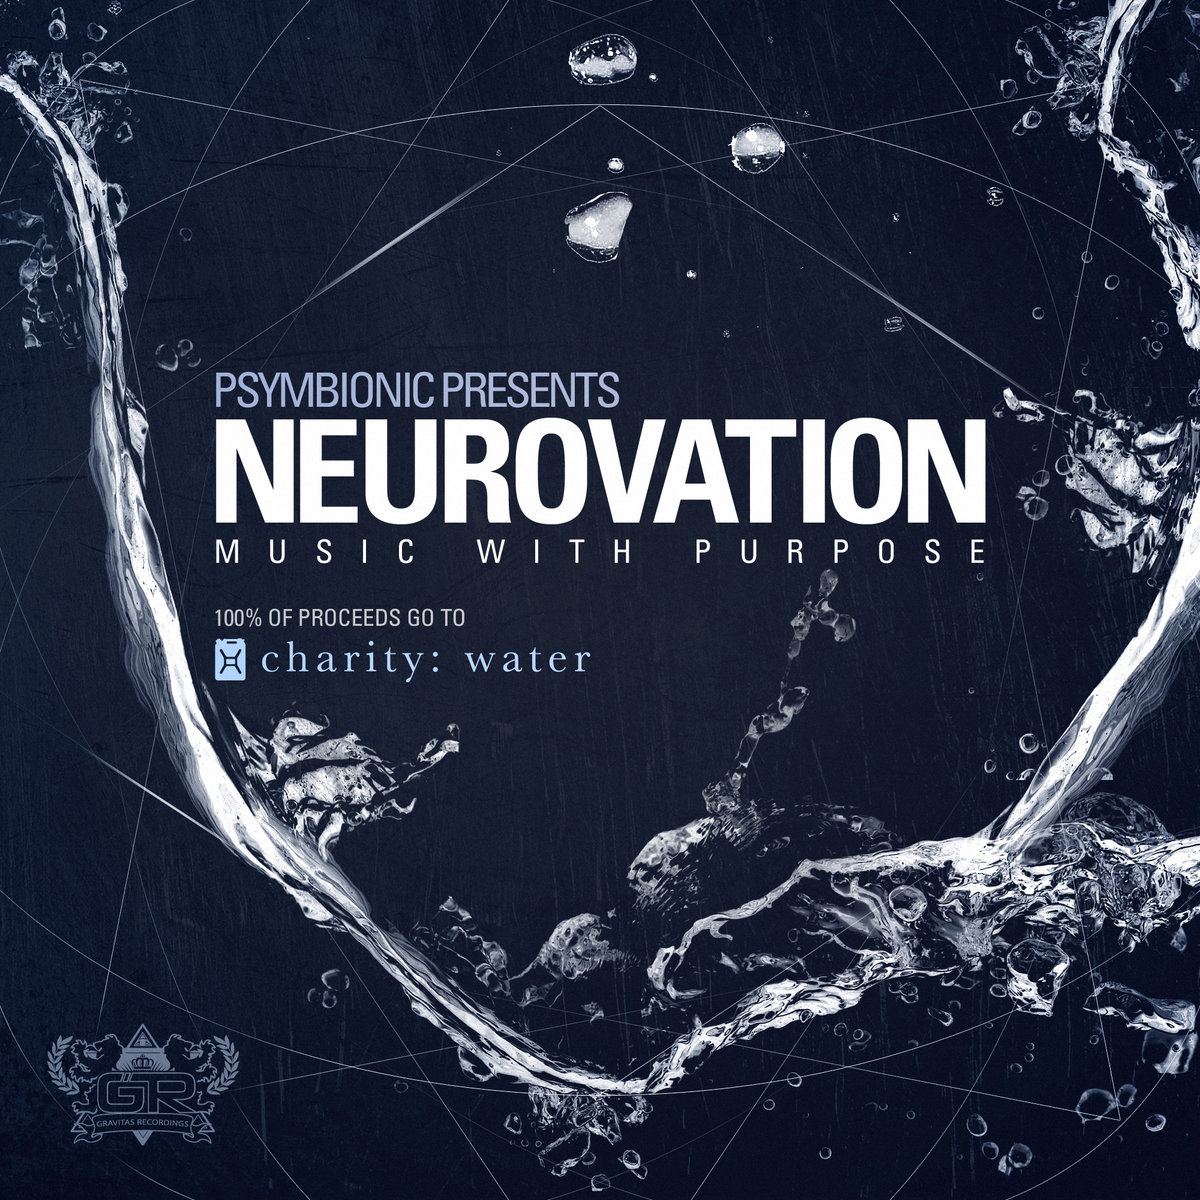 Mr. Bill - Cheyah @ 'Psymbionic Presents: Neurovation' album (cryptex, glitch hop)